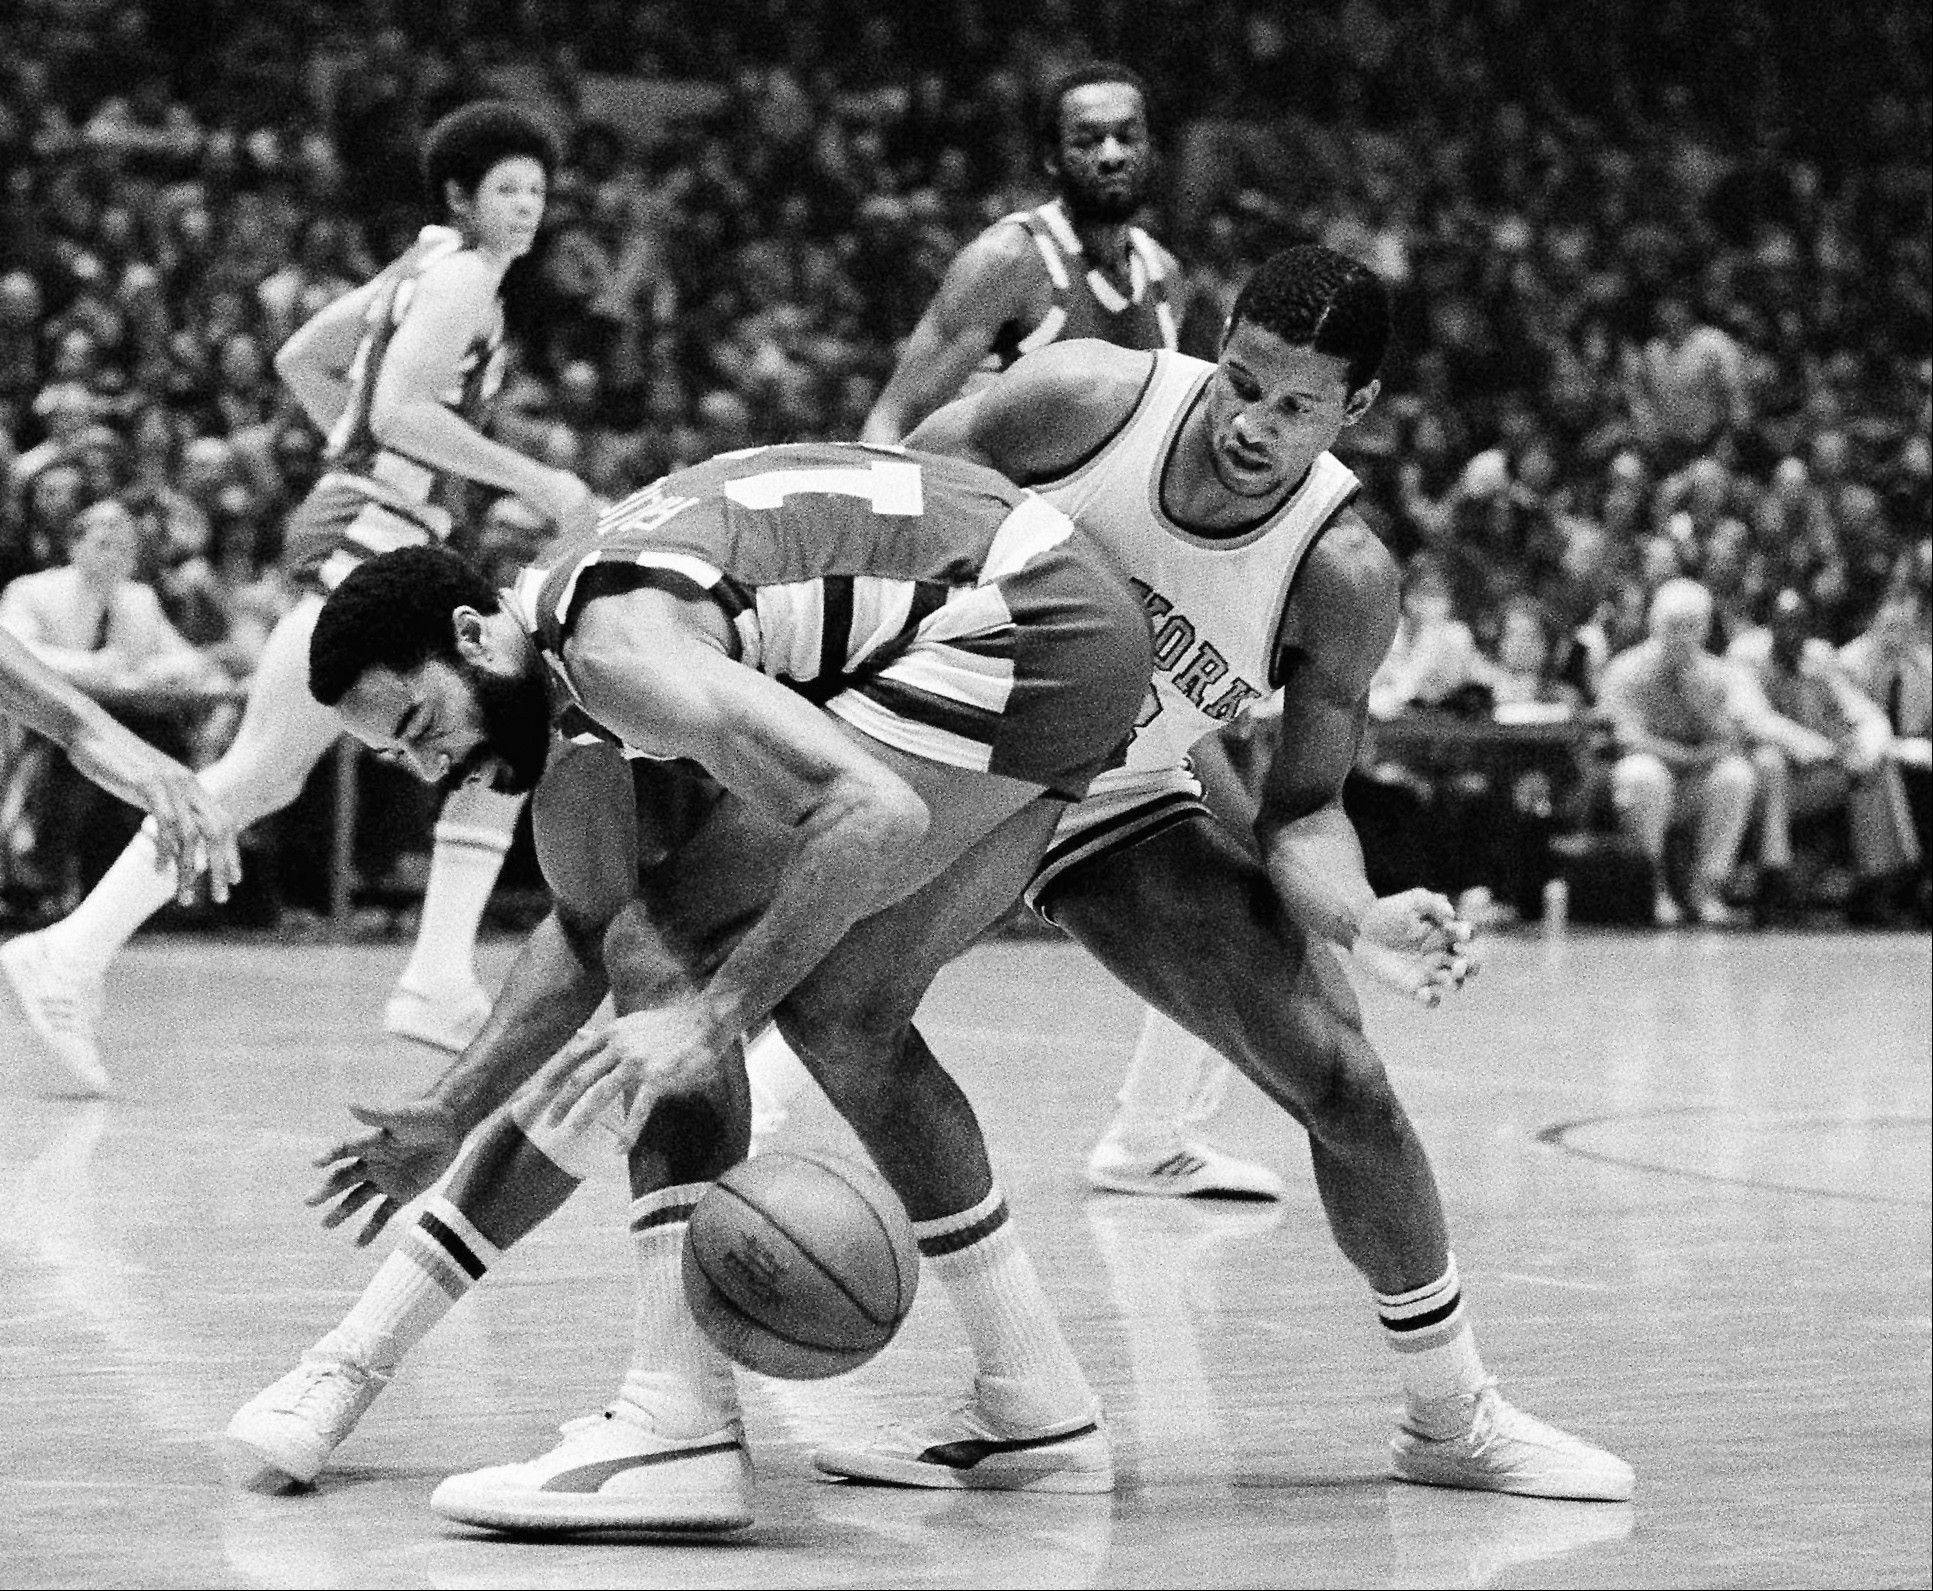 Associated Press/Oct. 25, 1977 Cleveland Cavaliers� Walt Frazier, left, and New York Knicks� Ray Williams vie for the ball during the second half of an NBA basketball game at New York�s Madison Square Garden.